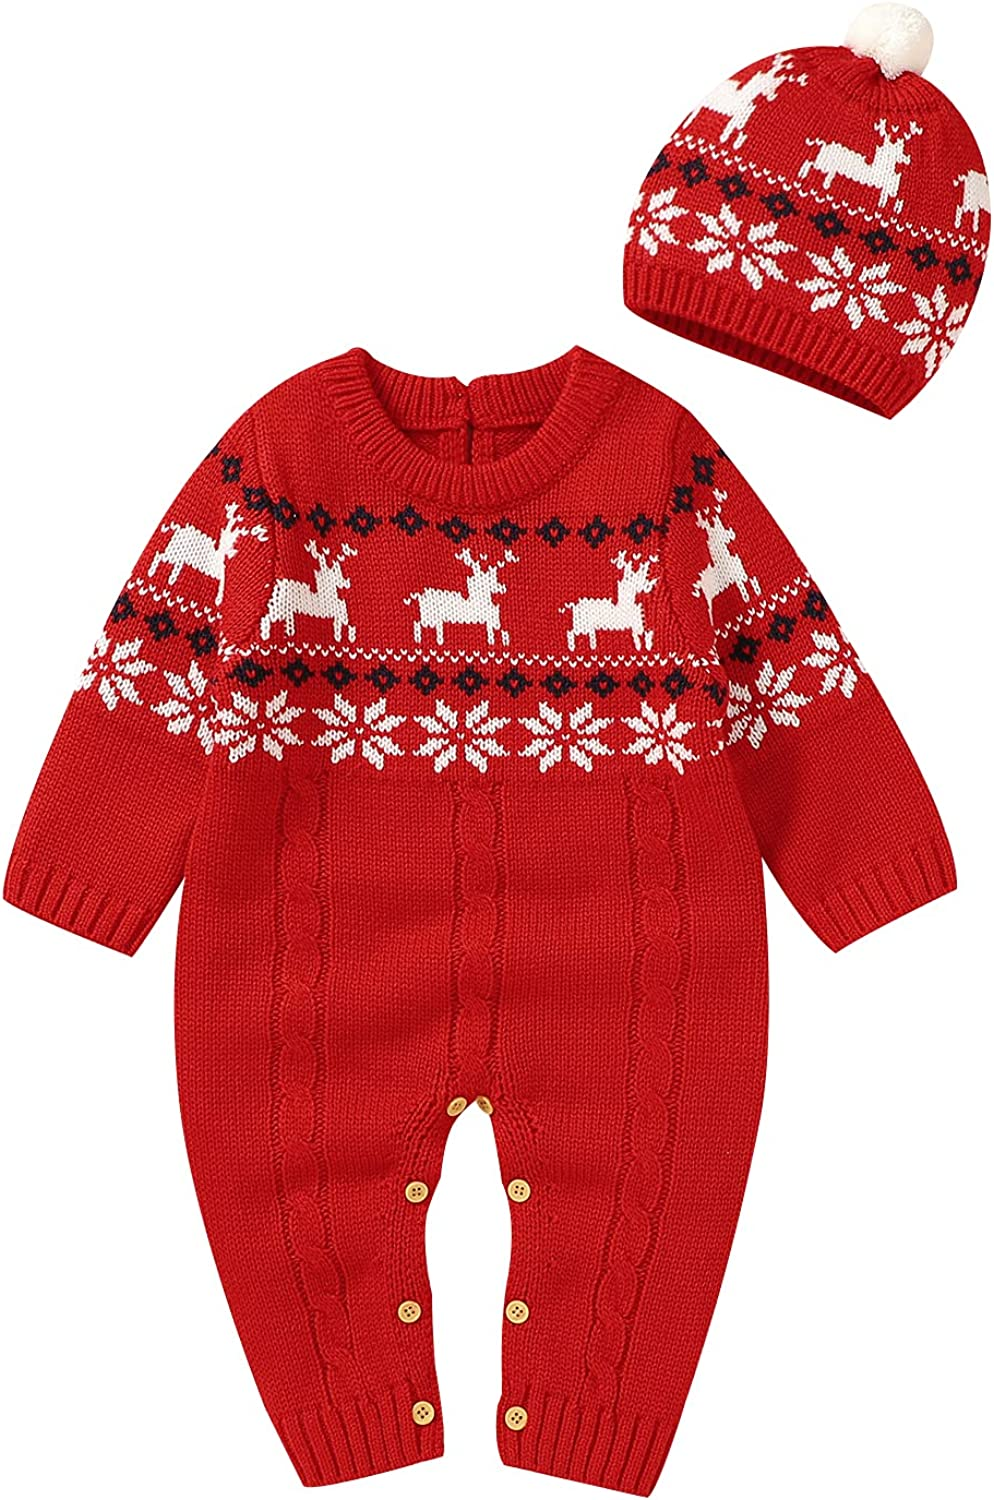 LAWKUL Baby Christmas Outfit Sweater Knit Onesies Clothes Santa Claus Hat Beanie